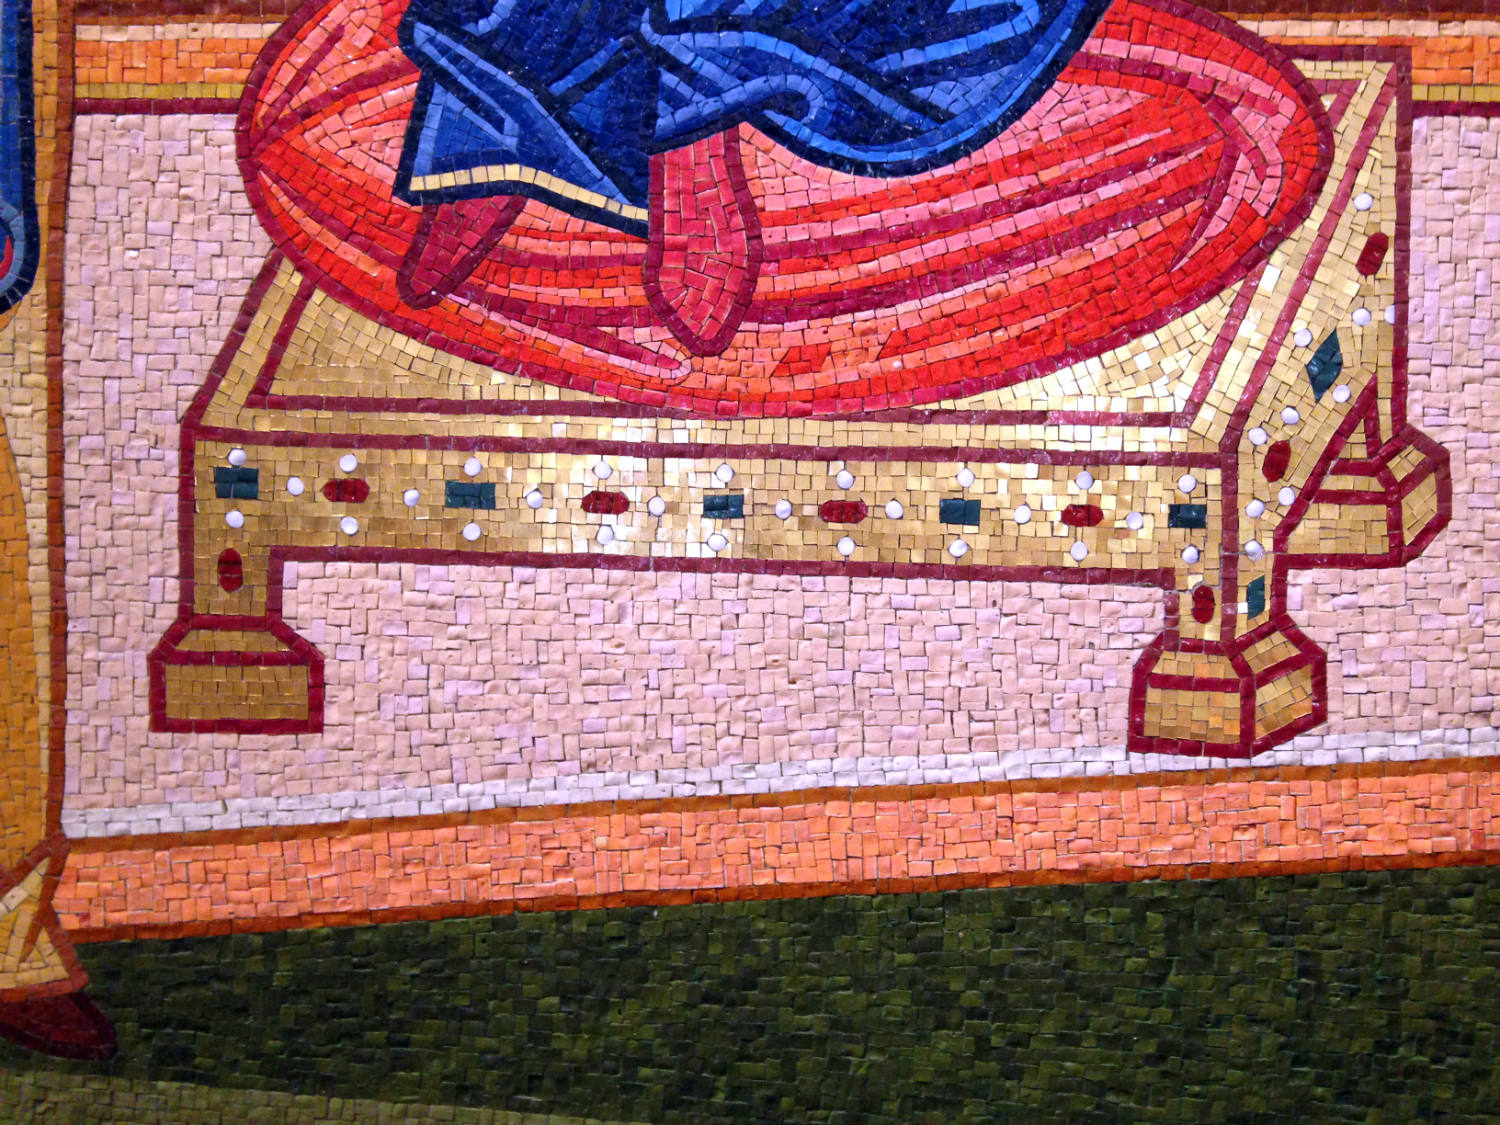 Detail of Tiles in Mural at St. Josaphat's Church